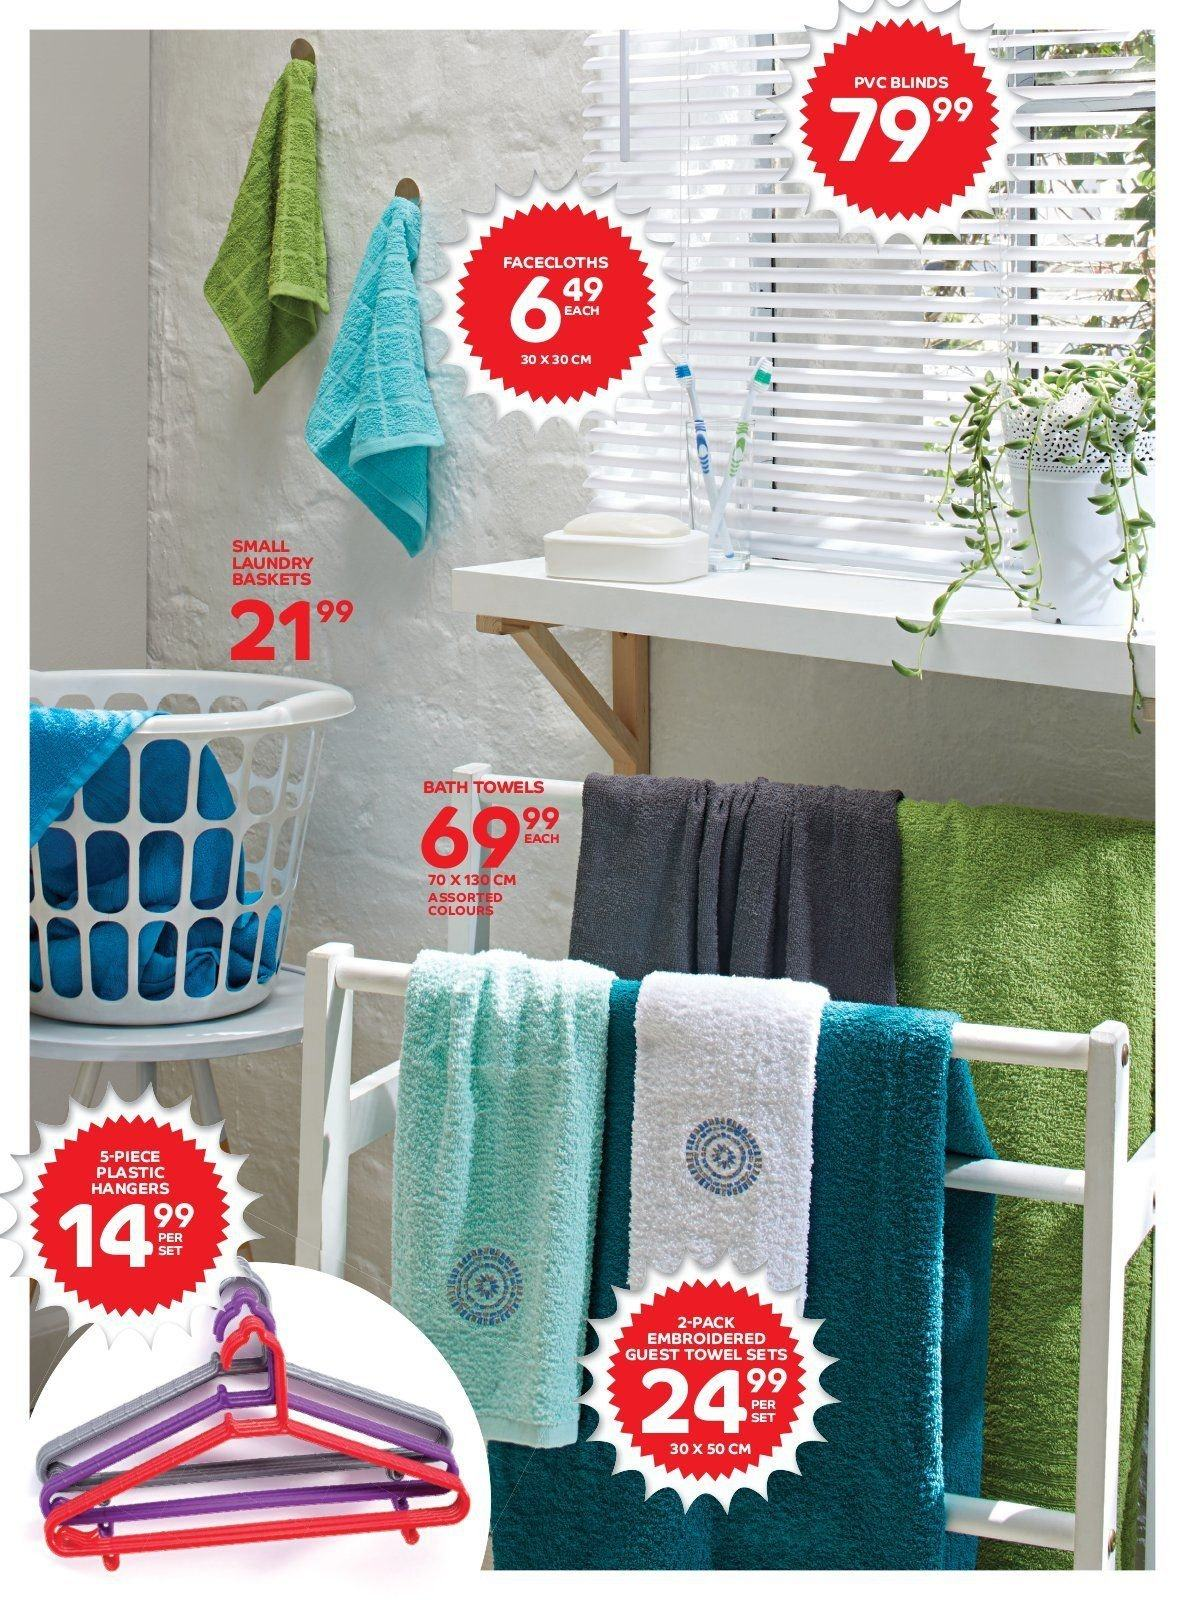 PEP Stores catalogue  - 12.25.2018 - 01.29.2019. Page 5.